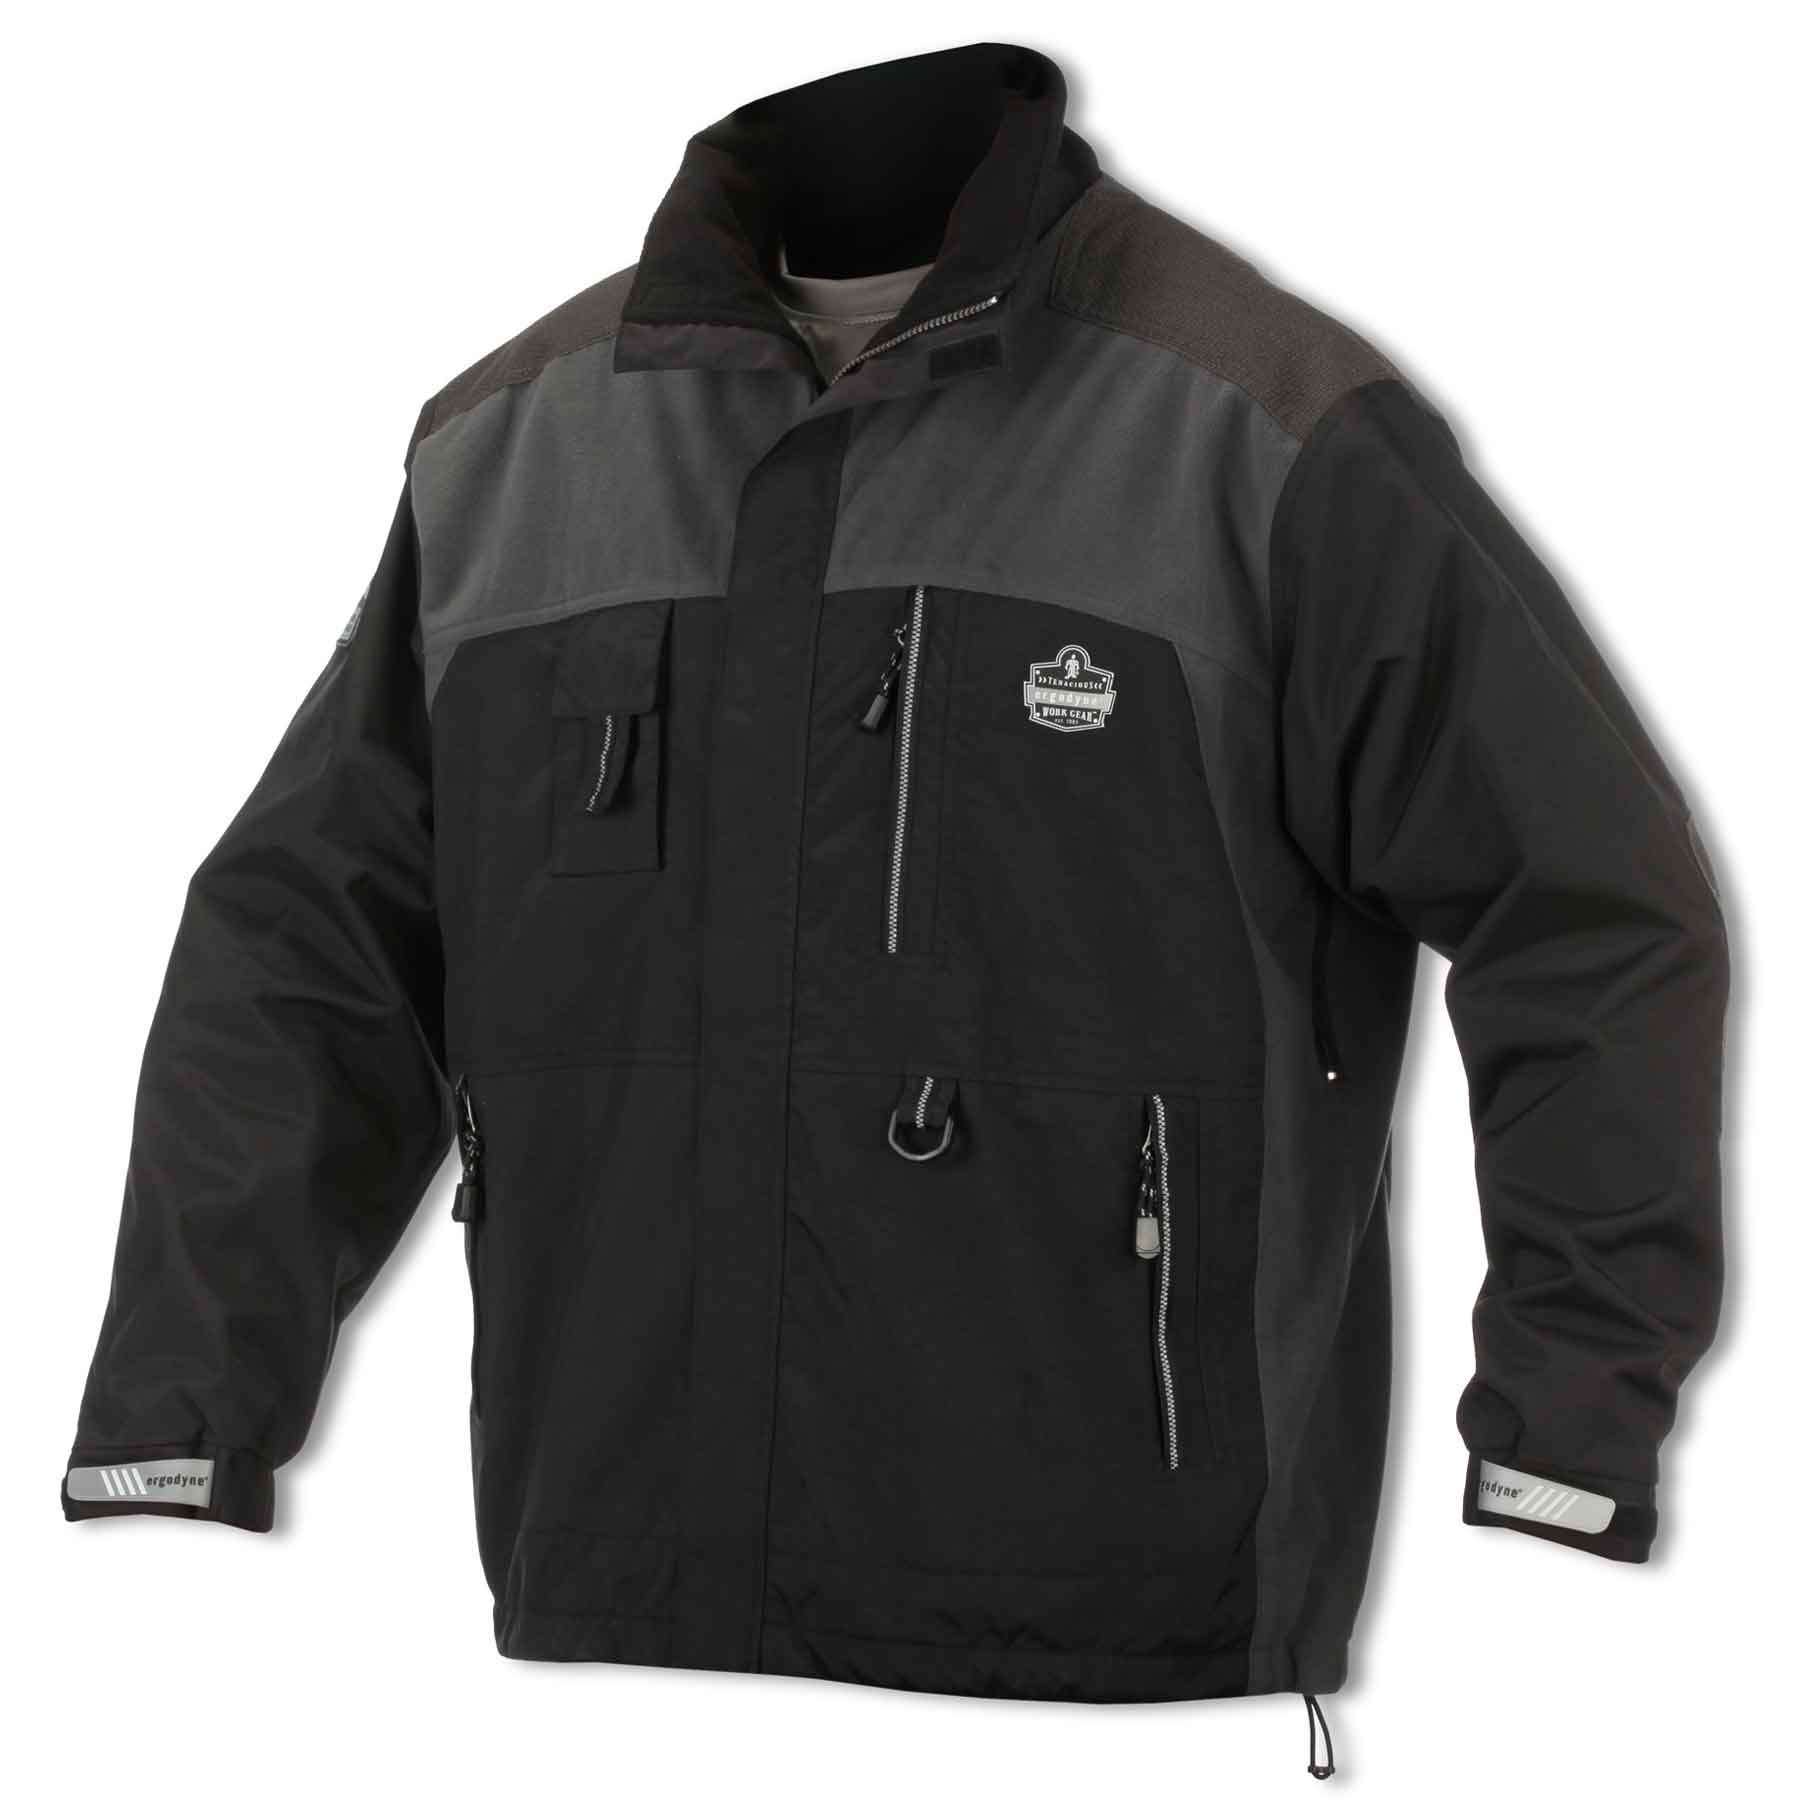 N-Ferno 6465 Men's Outer Layer Thermal Jacket with Armortex Reinforcement in Heavy Wear Zones, X-Large by Ergodyne (Image #1)